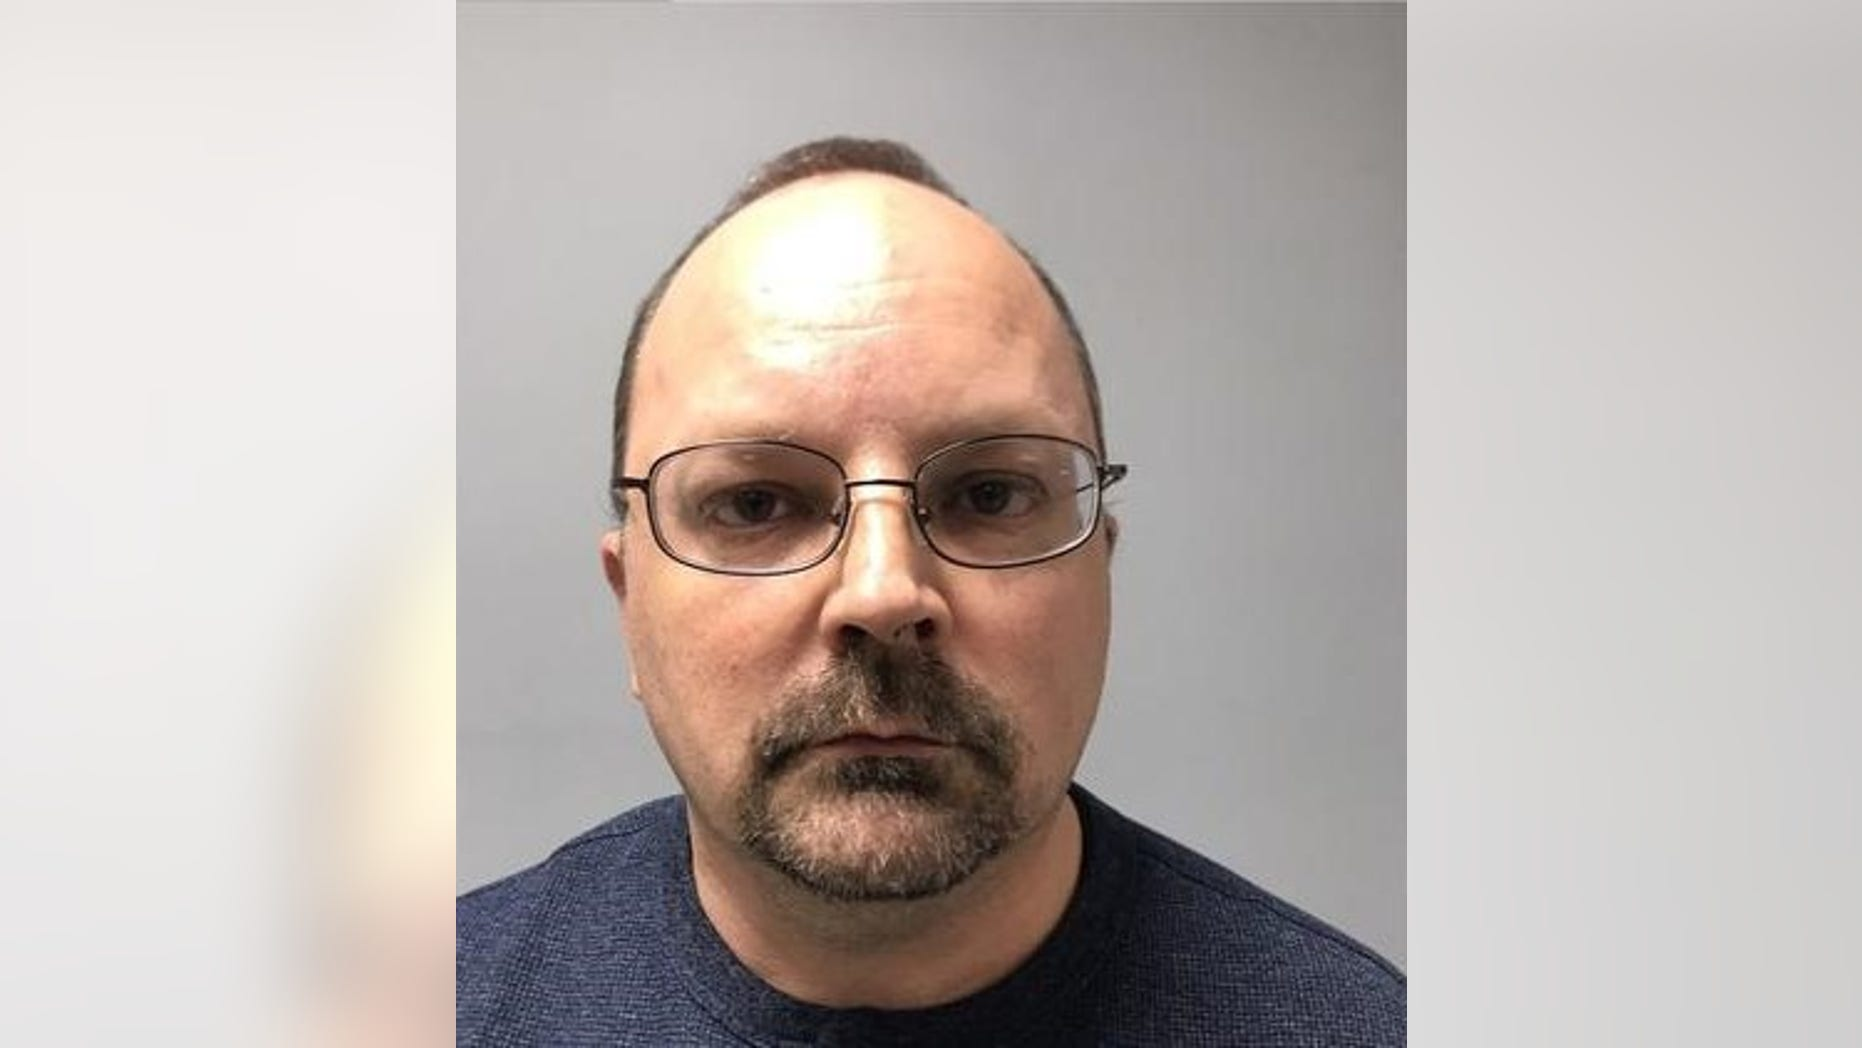 """Simon Hessler, 46, was arrested and faces several charges after allegedly trying to buy a 12-year-old girl for """"limitless sex"""" and """"slave training."""""""